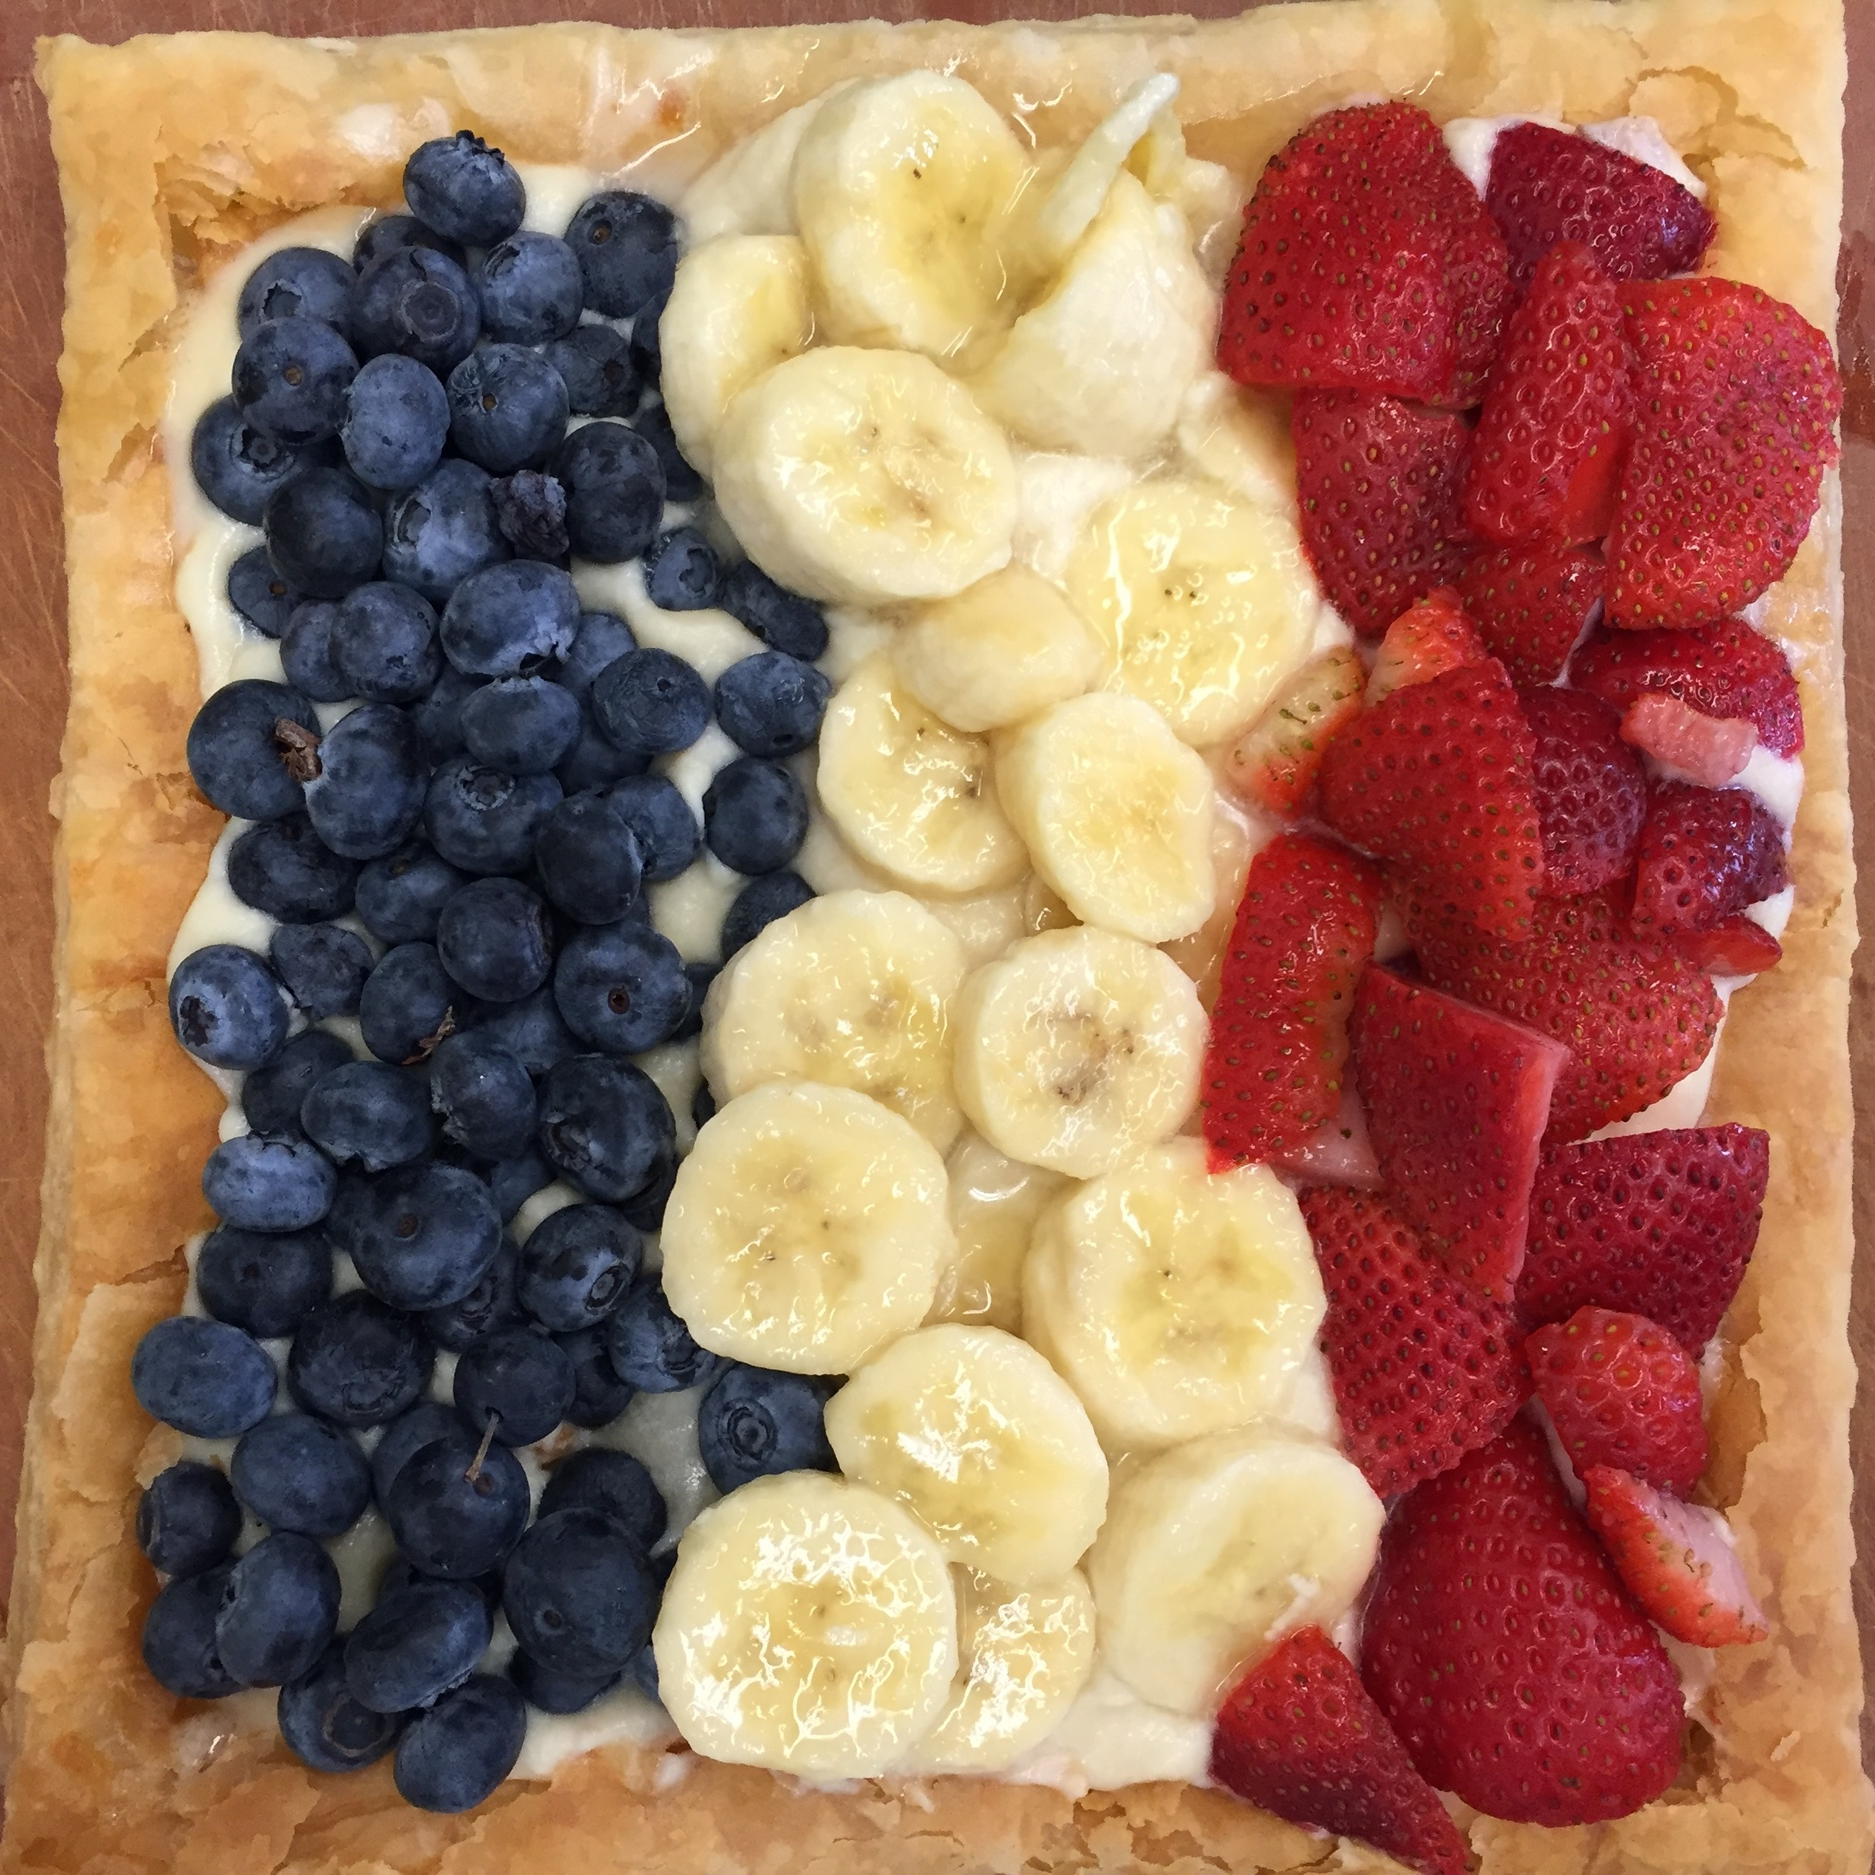 Easy Puff Pastry Tart  - we made this one in cooking class to resemble the French flag. Of course, you can use whatever fruits and berries you like, in any design you dream up!